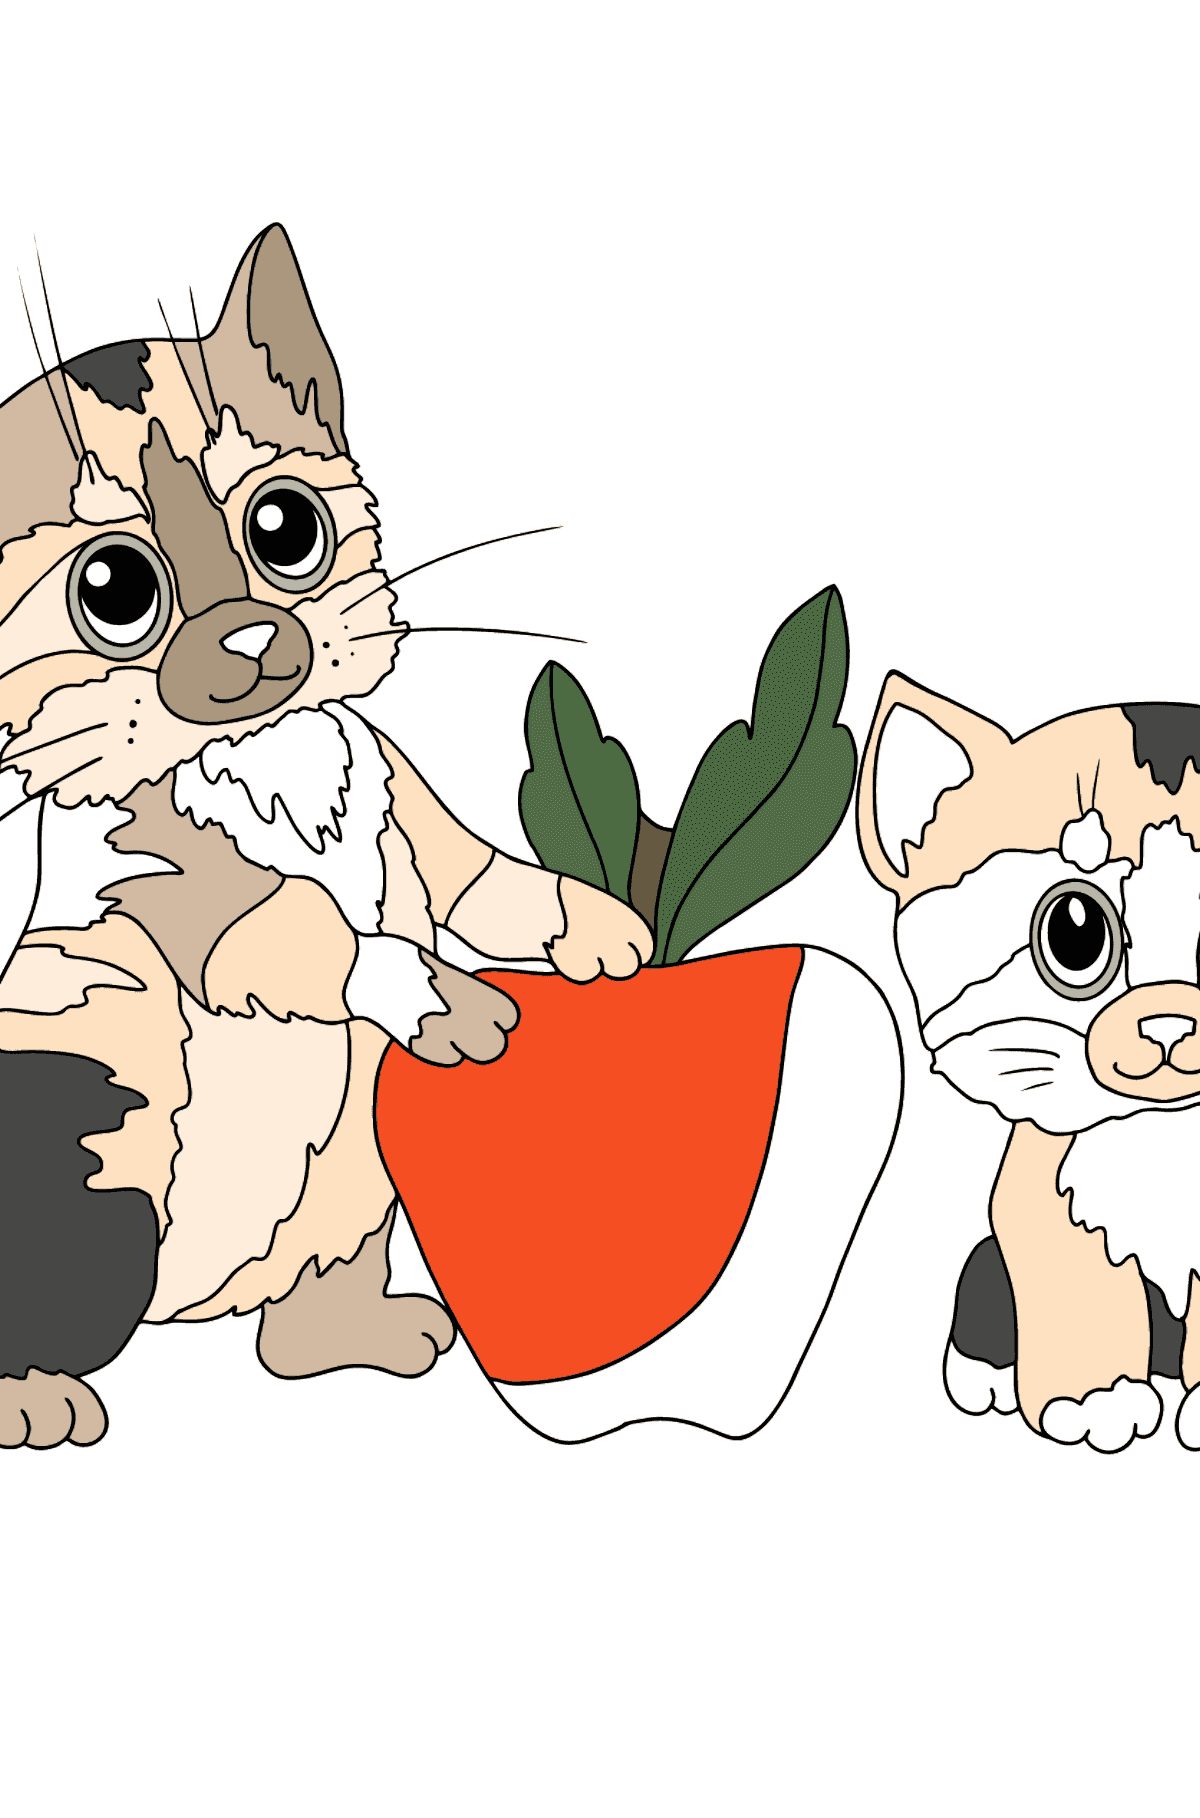 Coloring Page - Kittens are Having Fun with a Red Apple - Coloring Pages for Kids